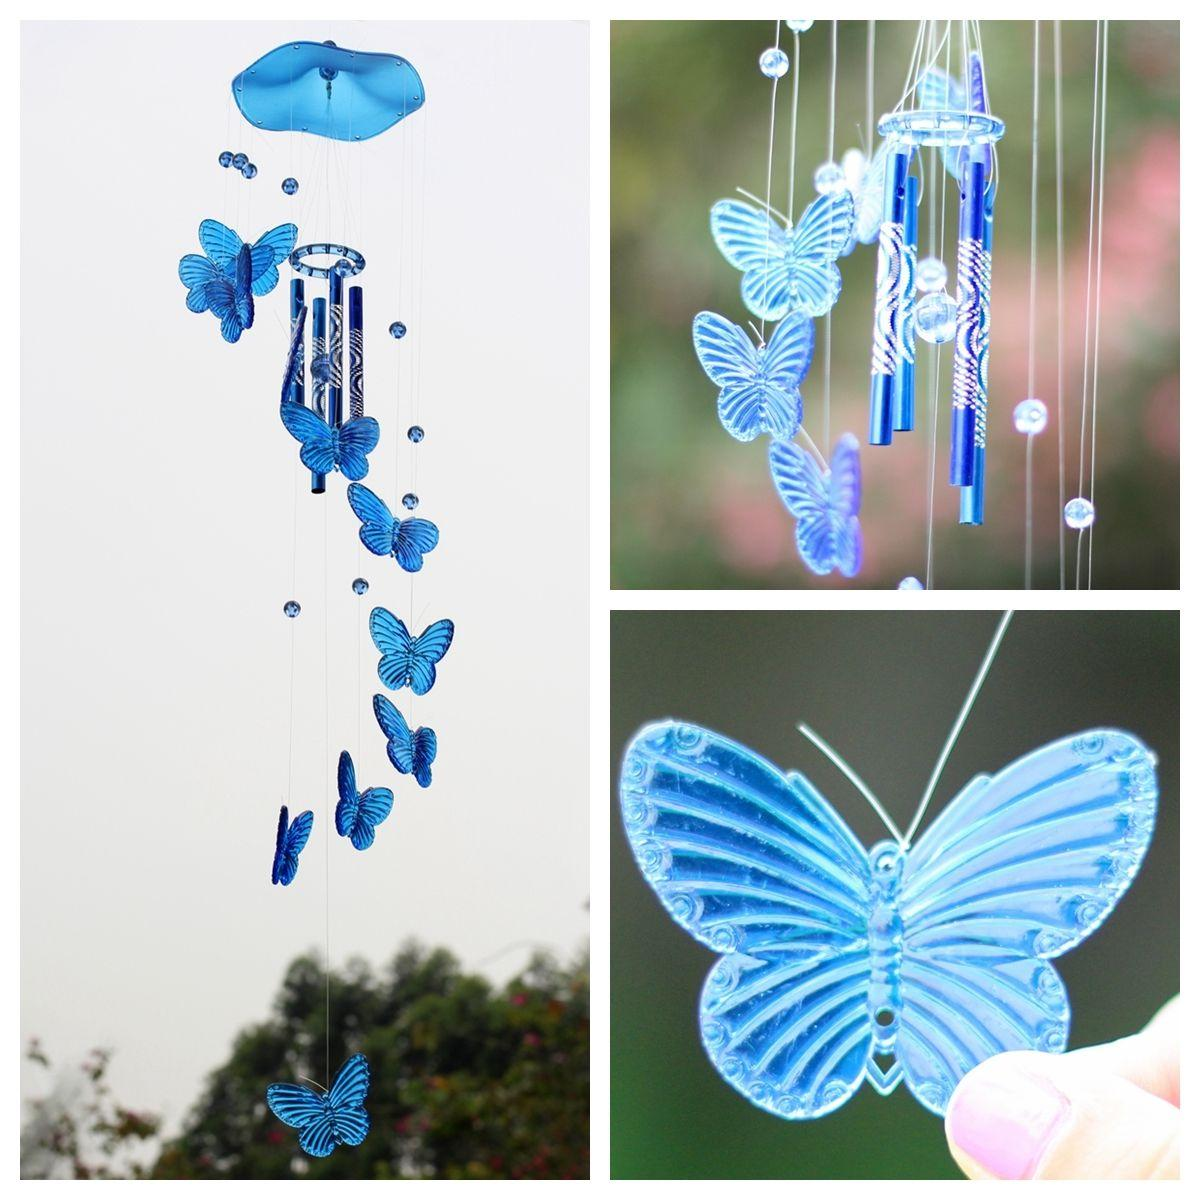 Creative Crystal Butterfly Wind Chime Bell Ornament Living Hanging Decor Art